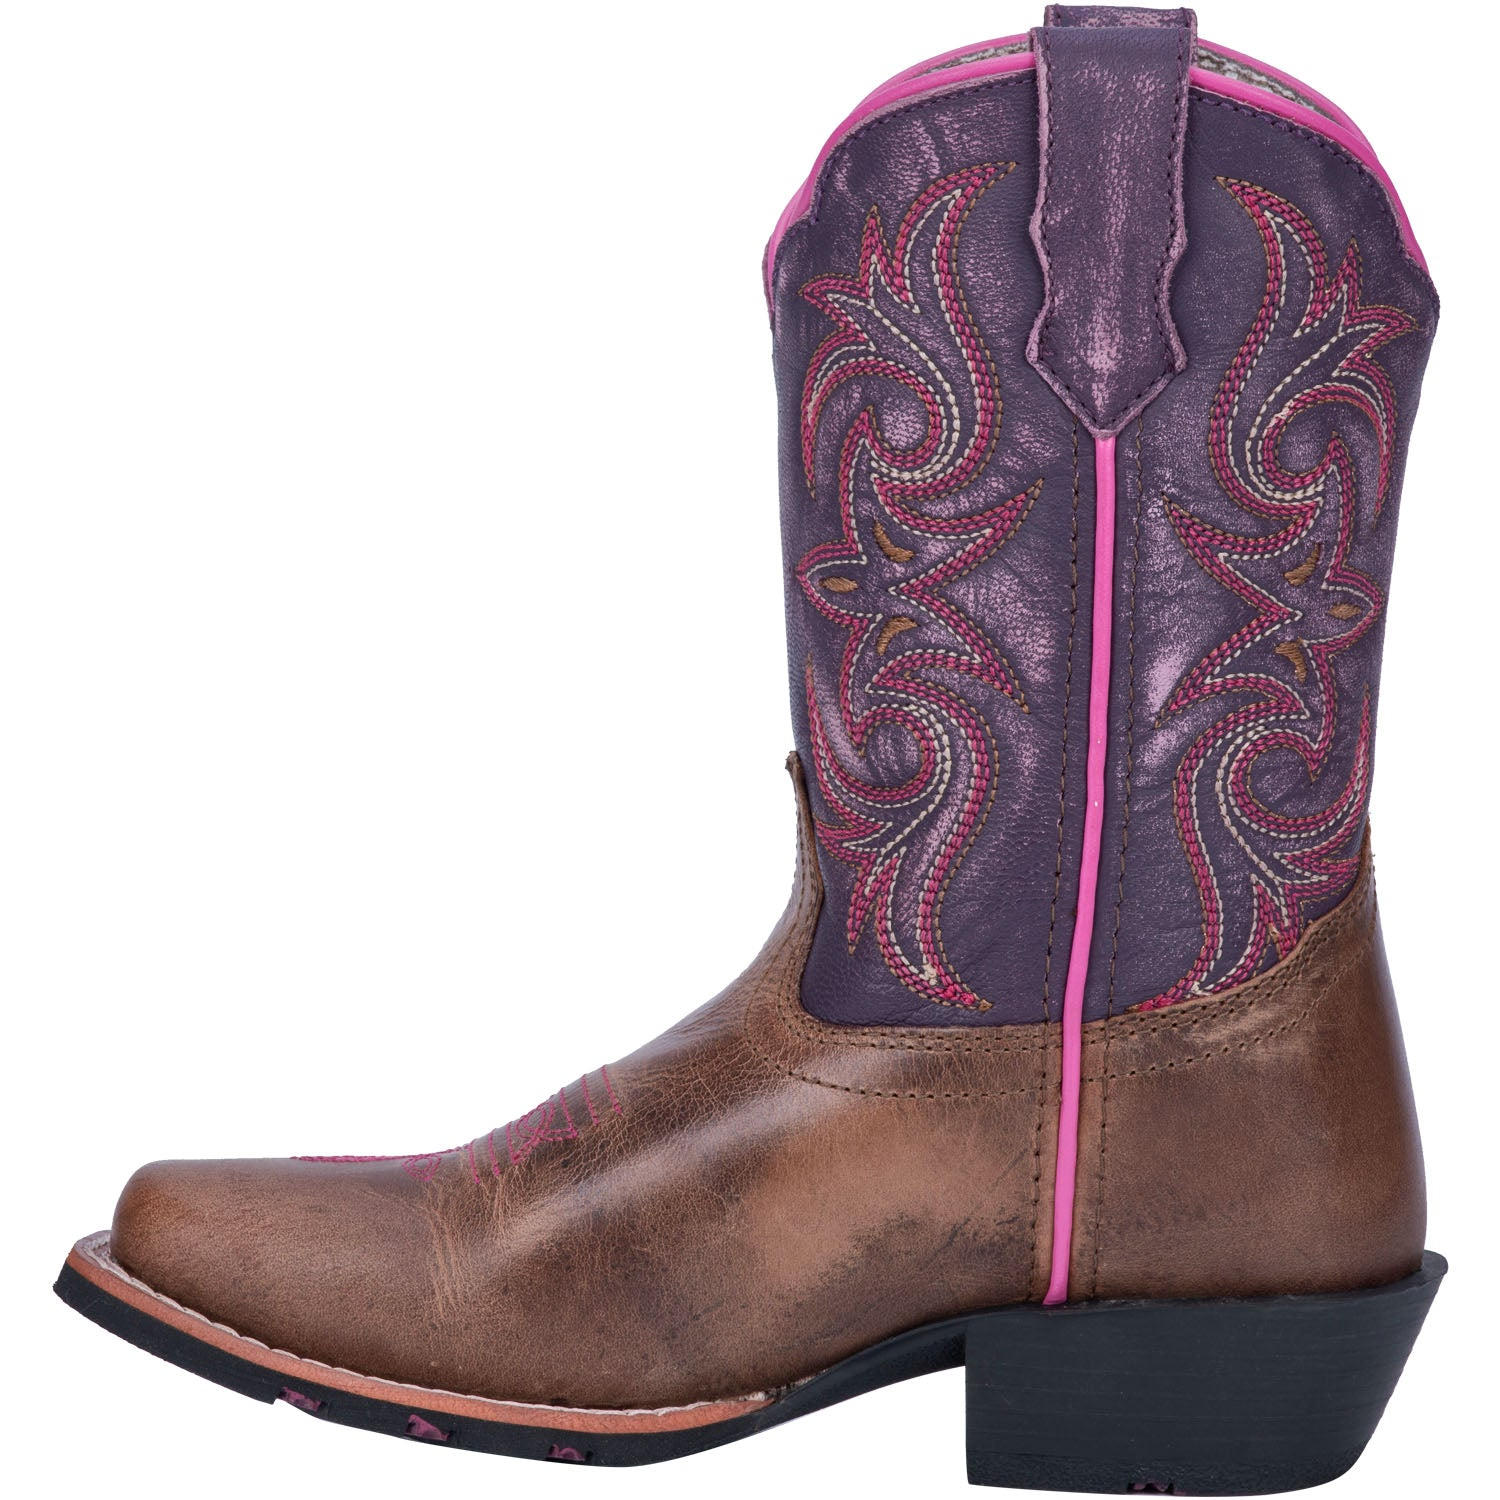 MAJESTY LEATHER CHILDREN'S BOOT 4253897359402